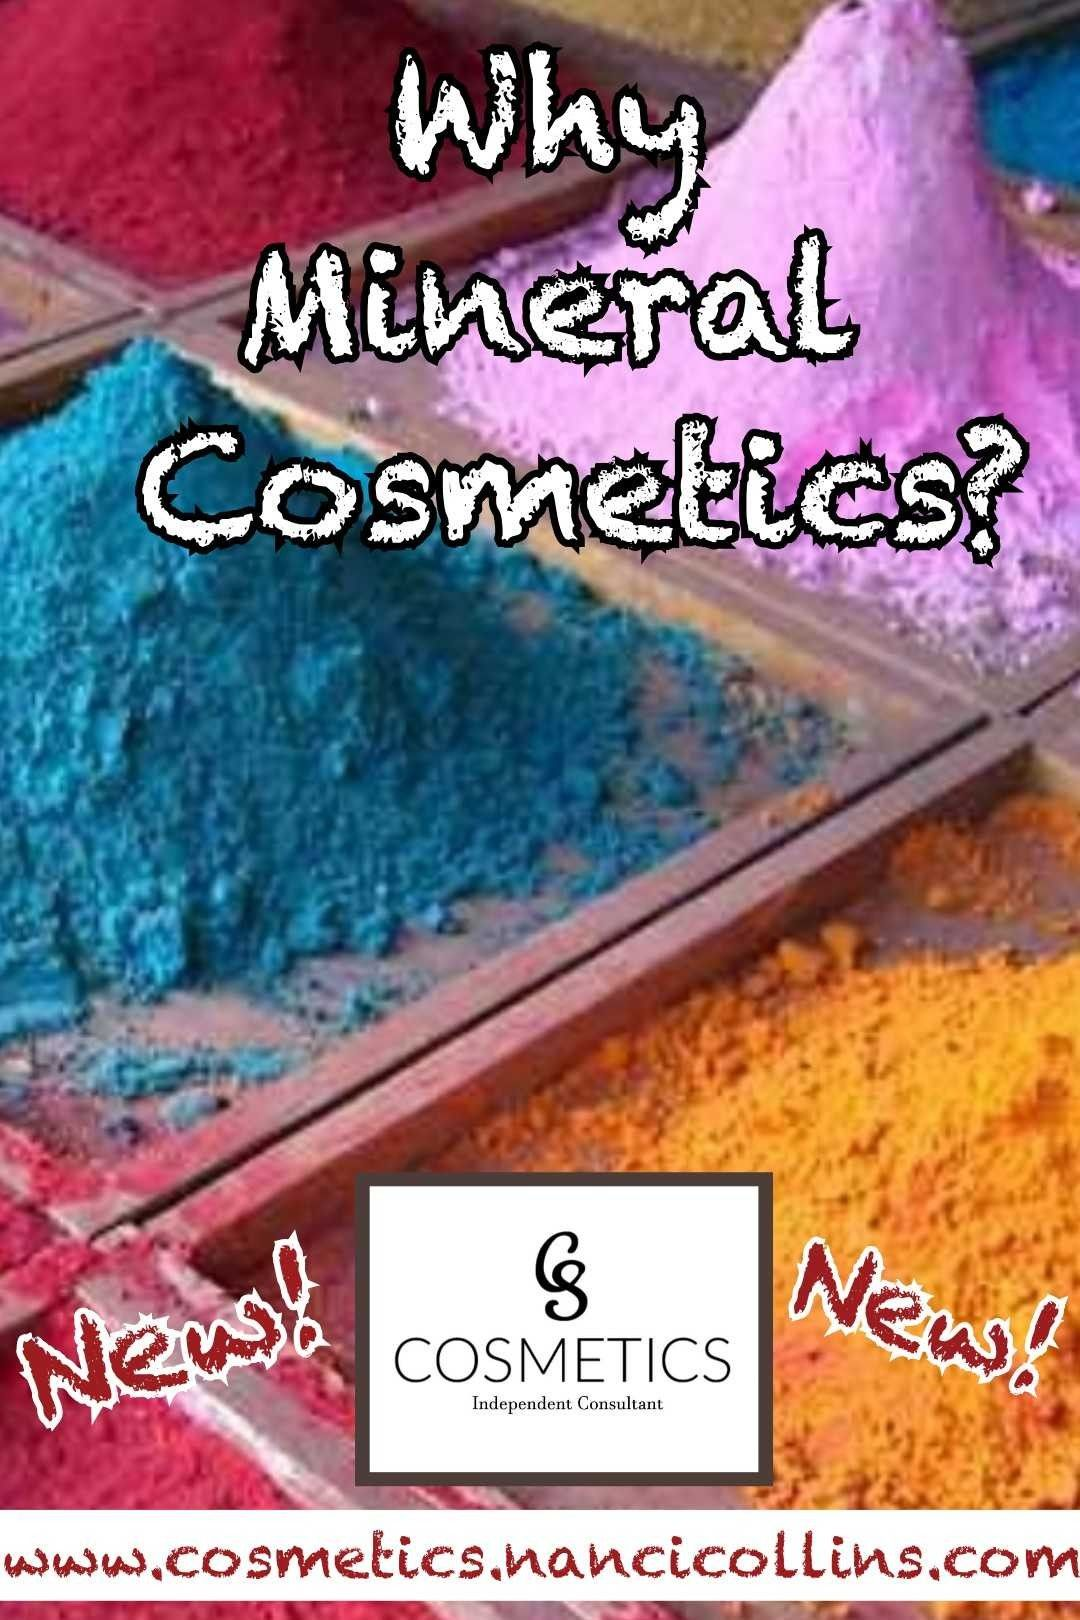 Did you know most Makeup contains chemicals? Natural